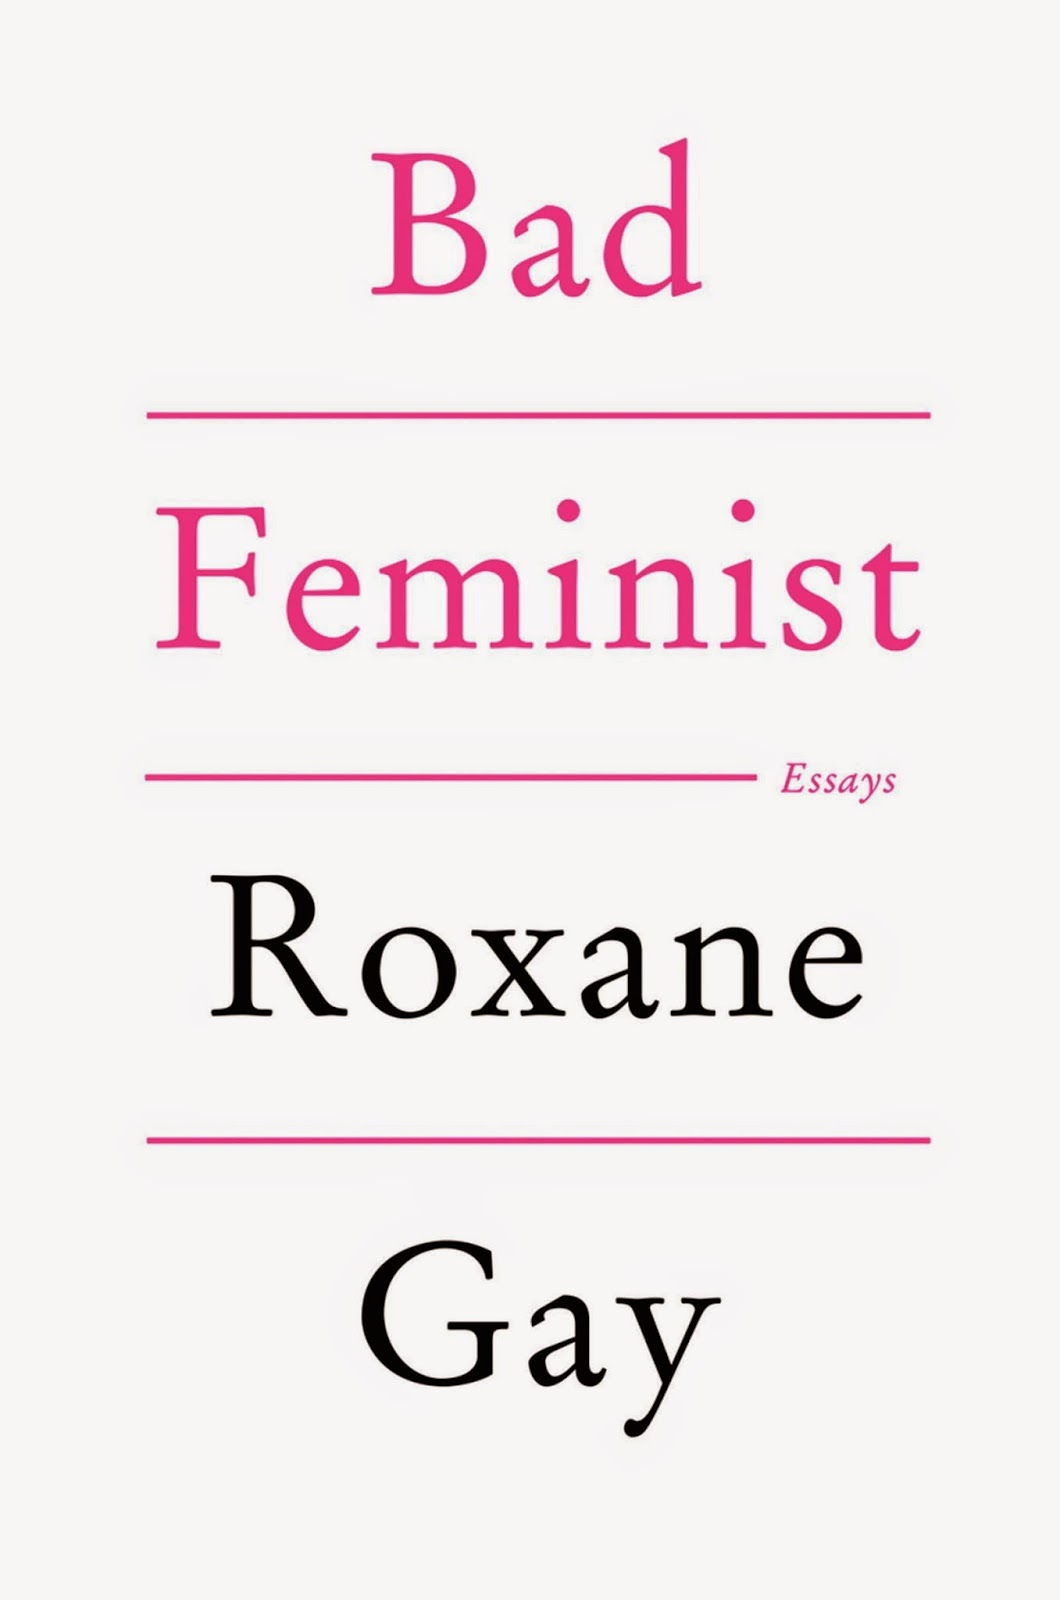 http://www.bookdepository.com/Bad-Feminist-Roxane-Gay/9781472119735/?a_aid=jbblkh